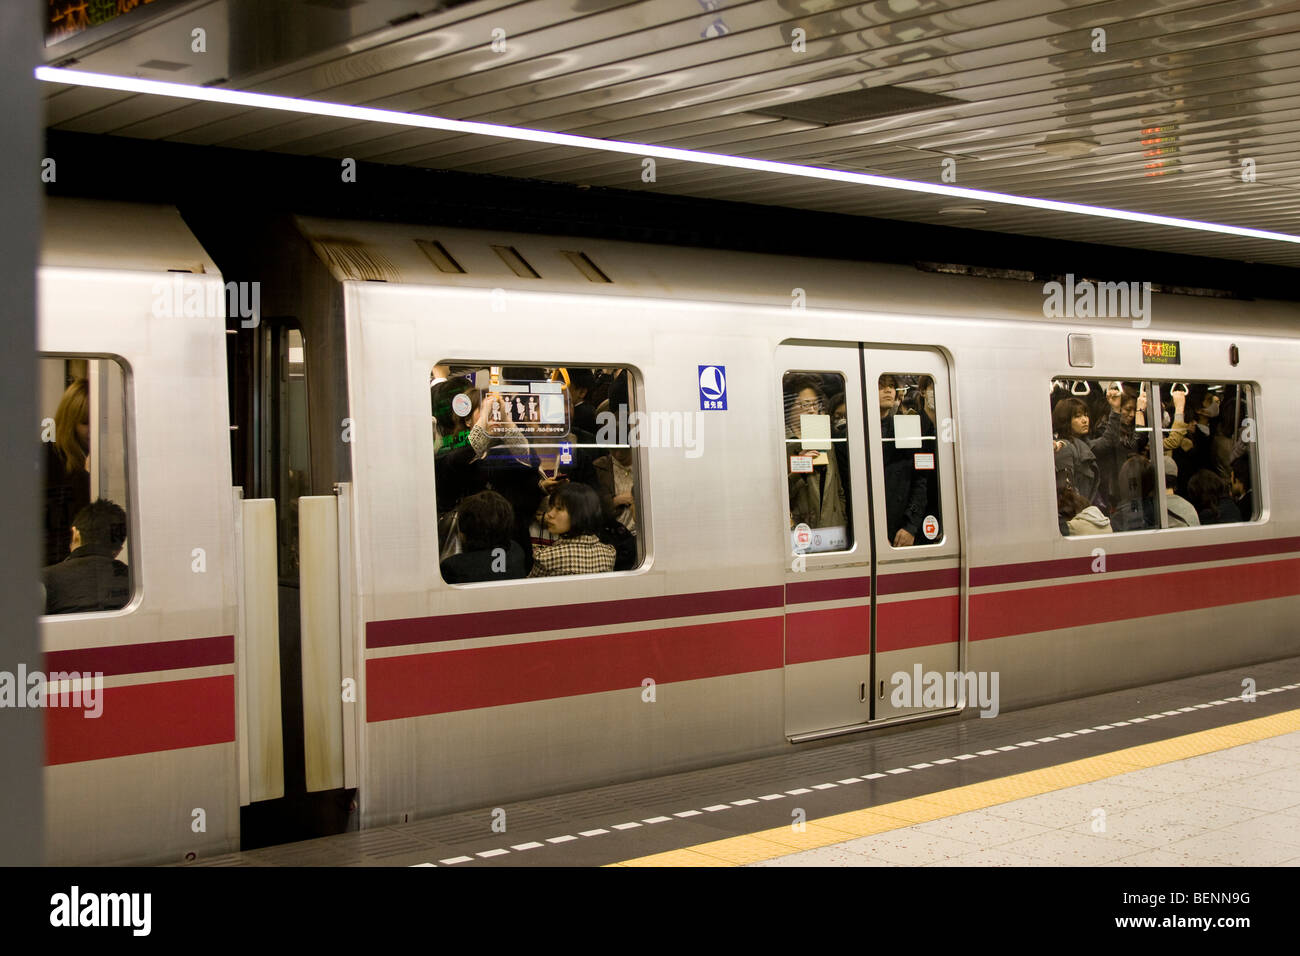 Tokyo Metro filled with passengers on rush hour - Stock Image